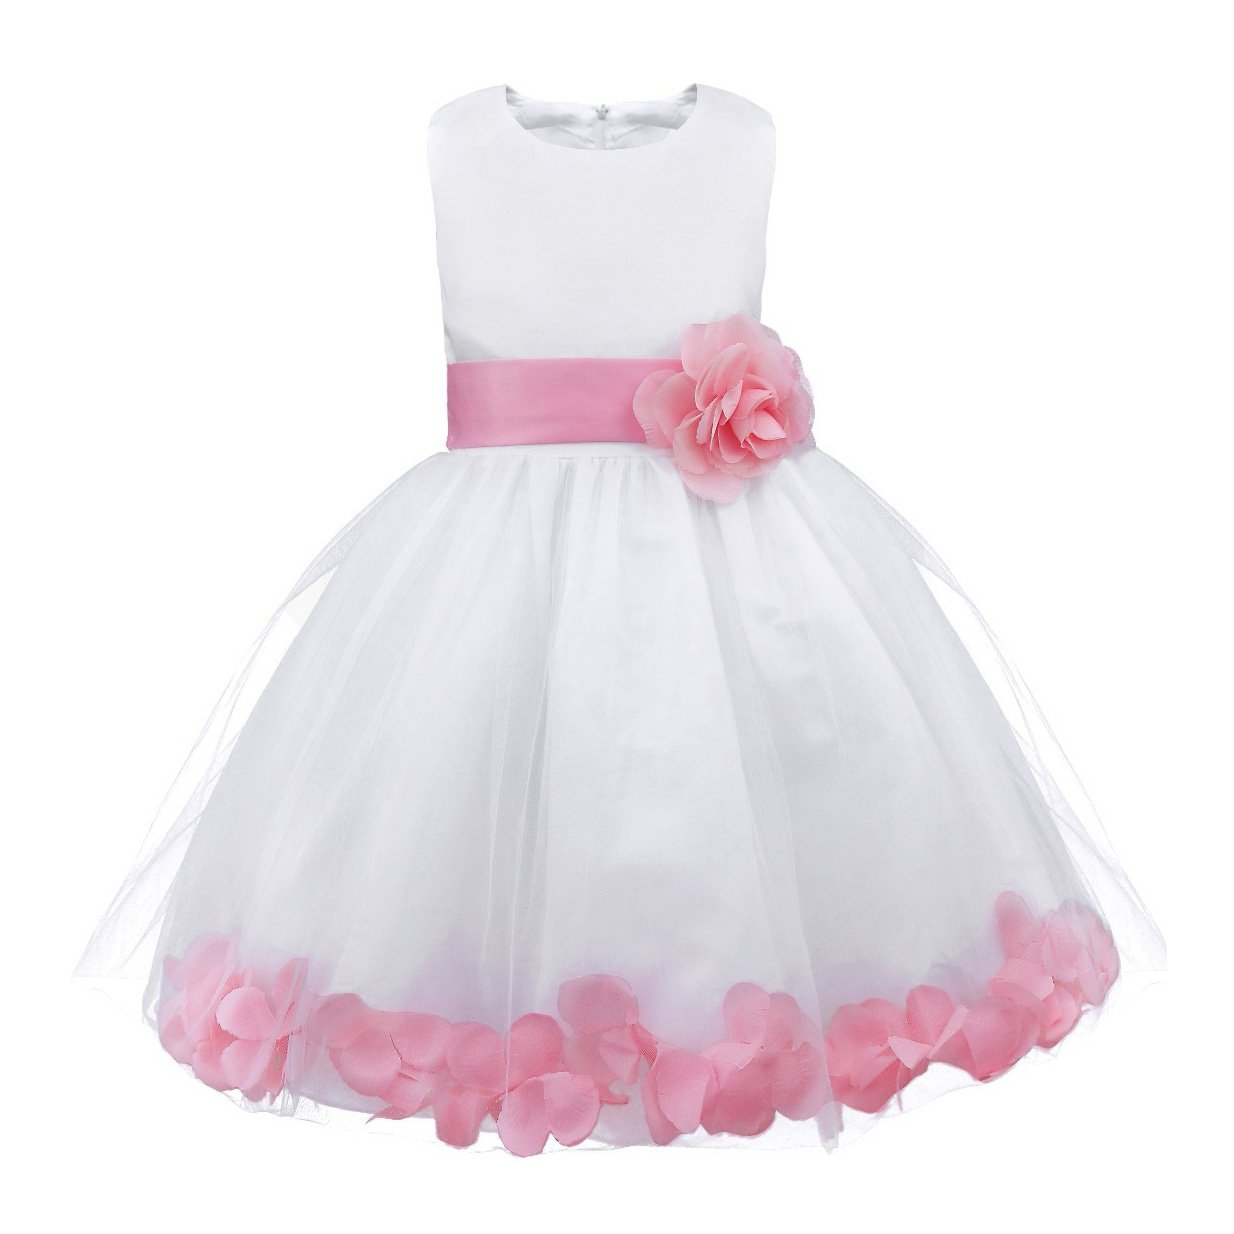 Toddler Dress Pink And White Amazon